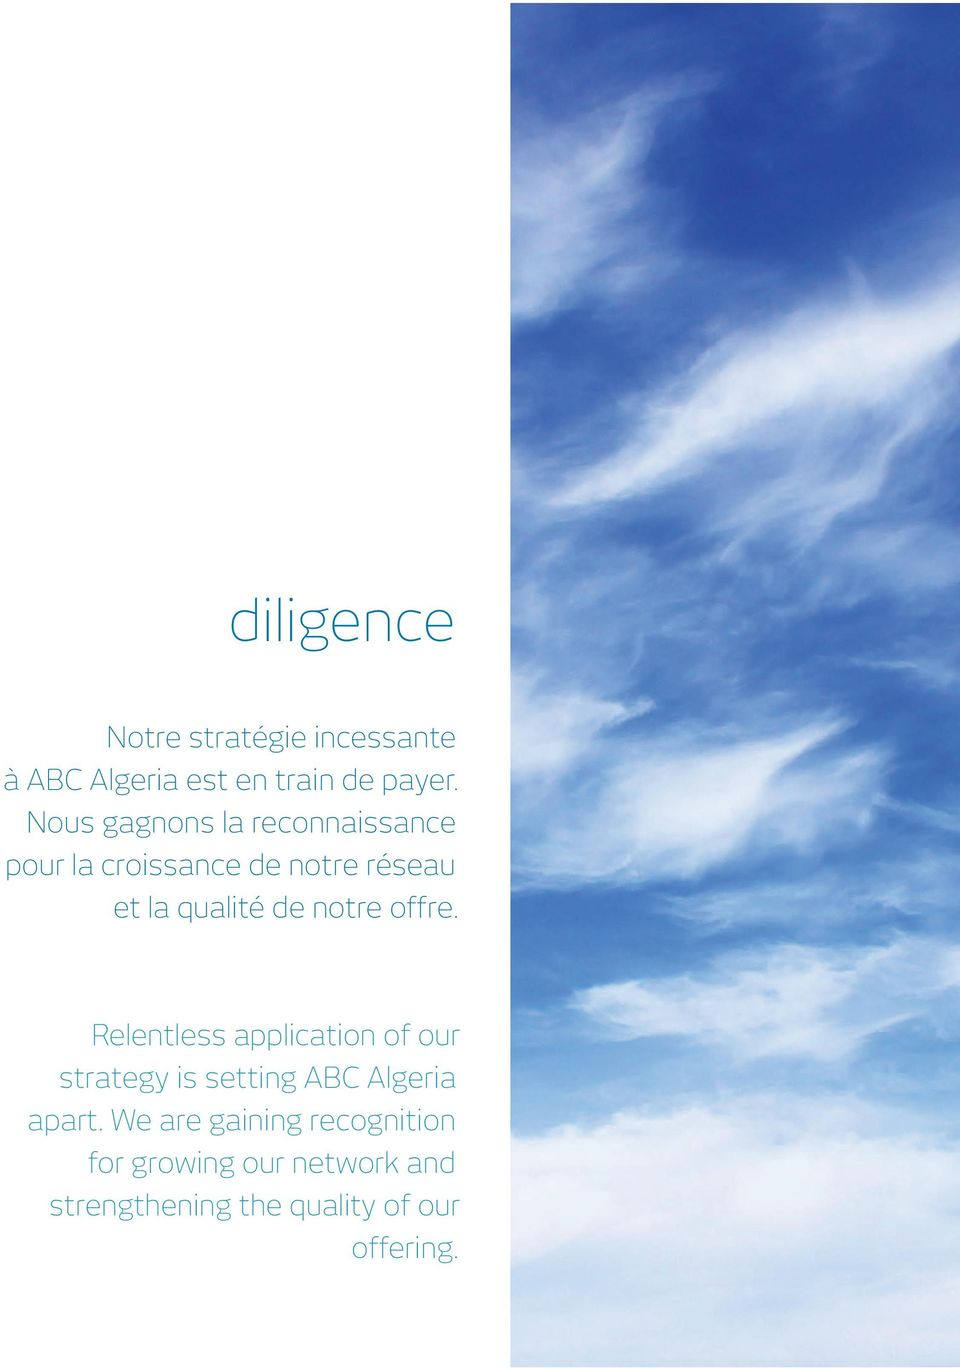 notre offre. Relentless application of our strategy is setting ABC Algeria apart.